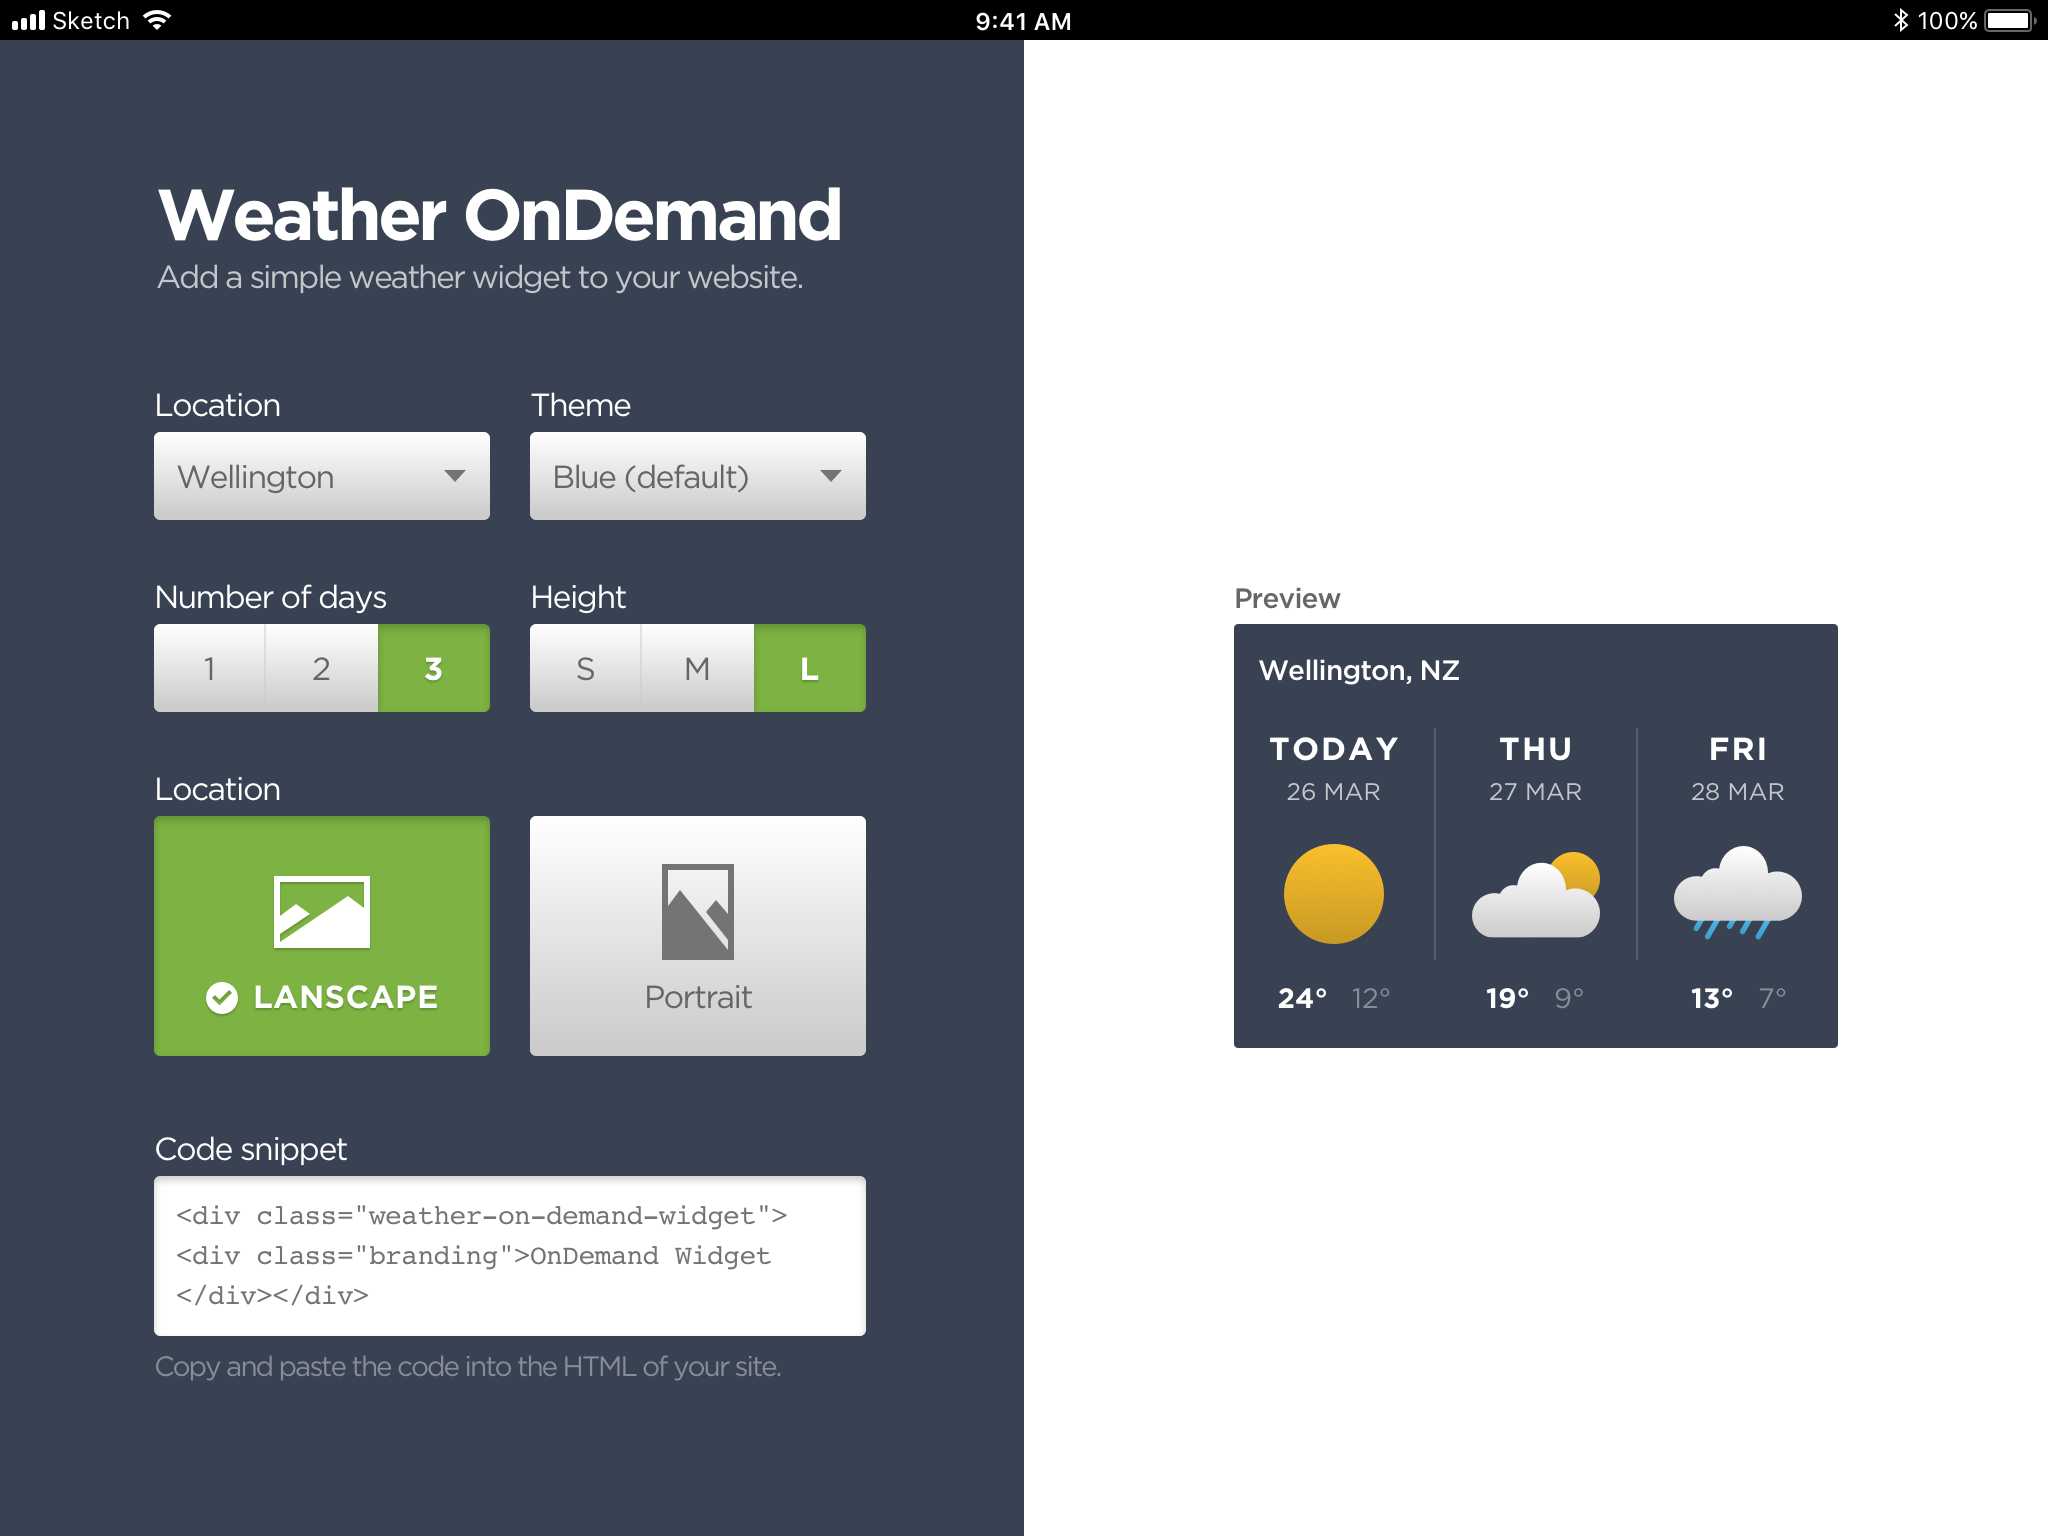 Weather OnDemand dashboard